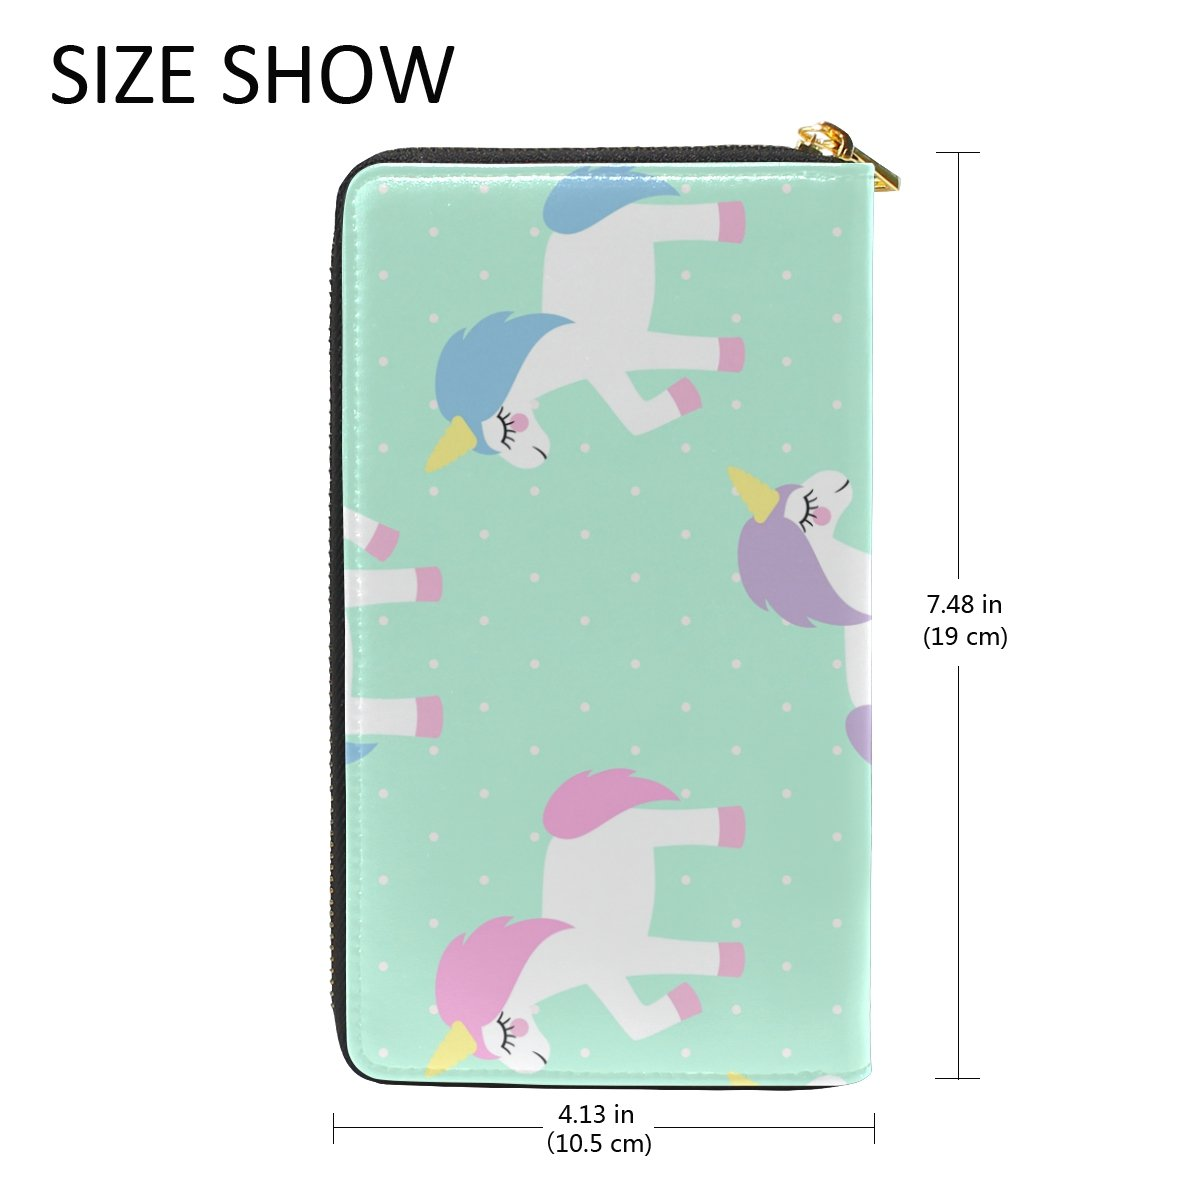 MAPOLO Cute Cartoon Unicorn Mint Green Polka Dots Print Womens Clutch Purses Organizer And Handbags Zip Around Wallet